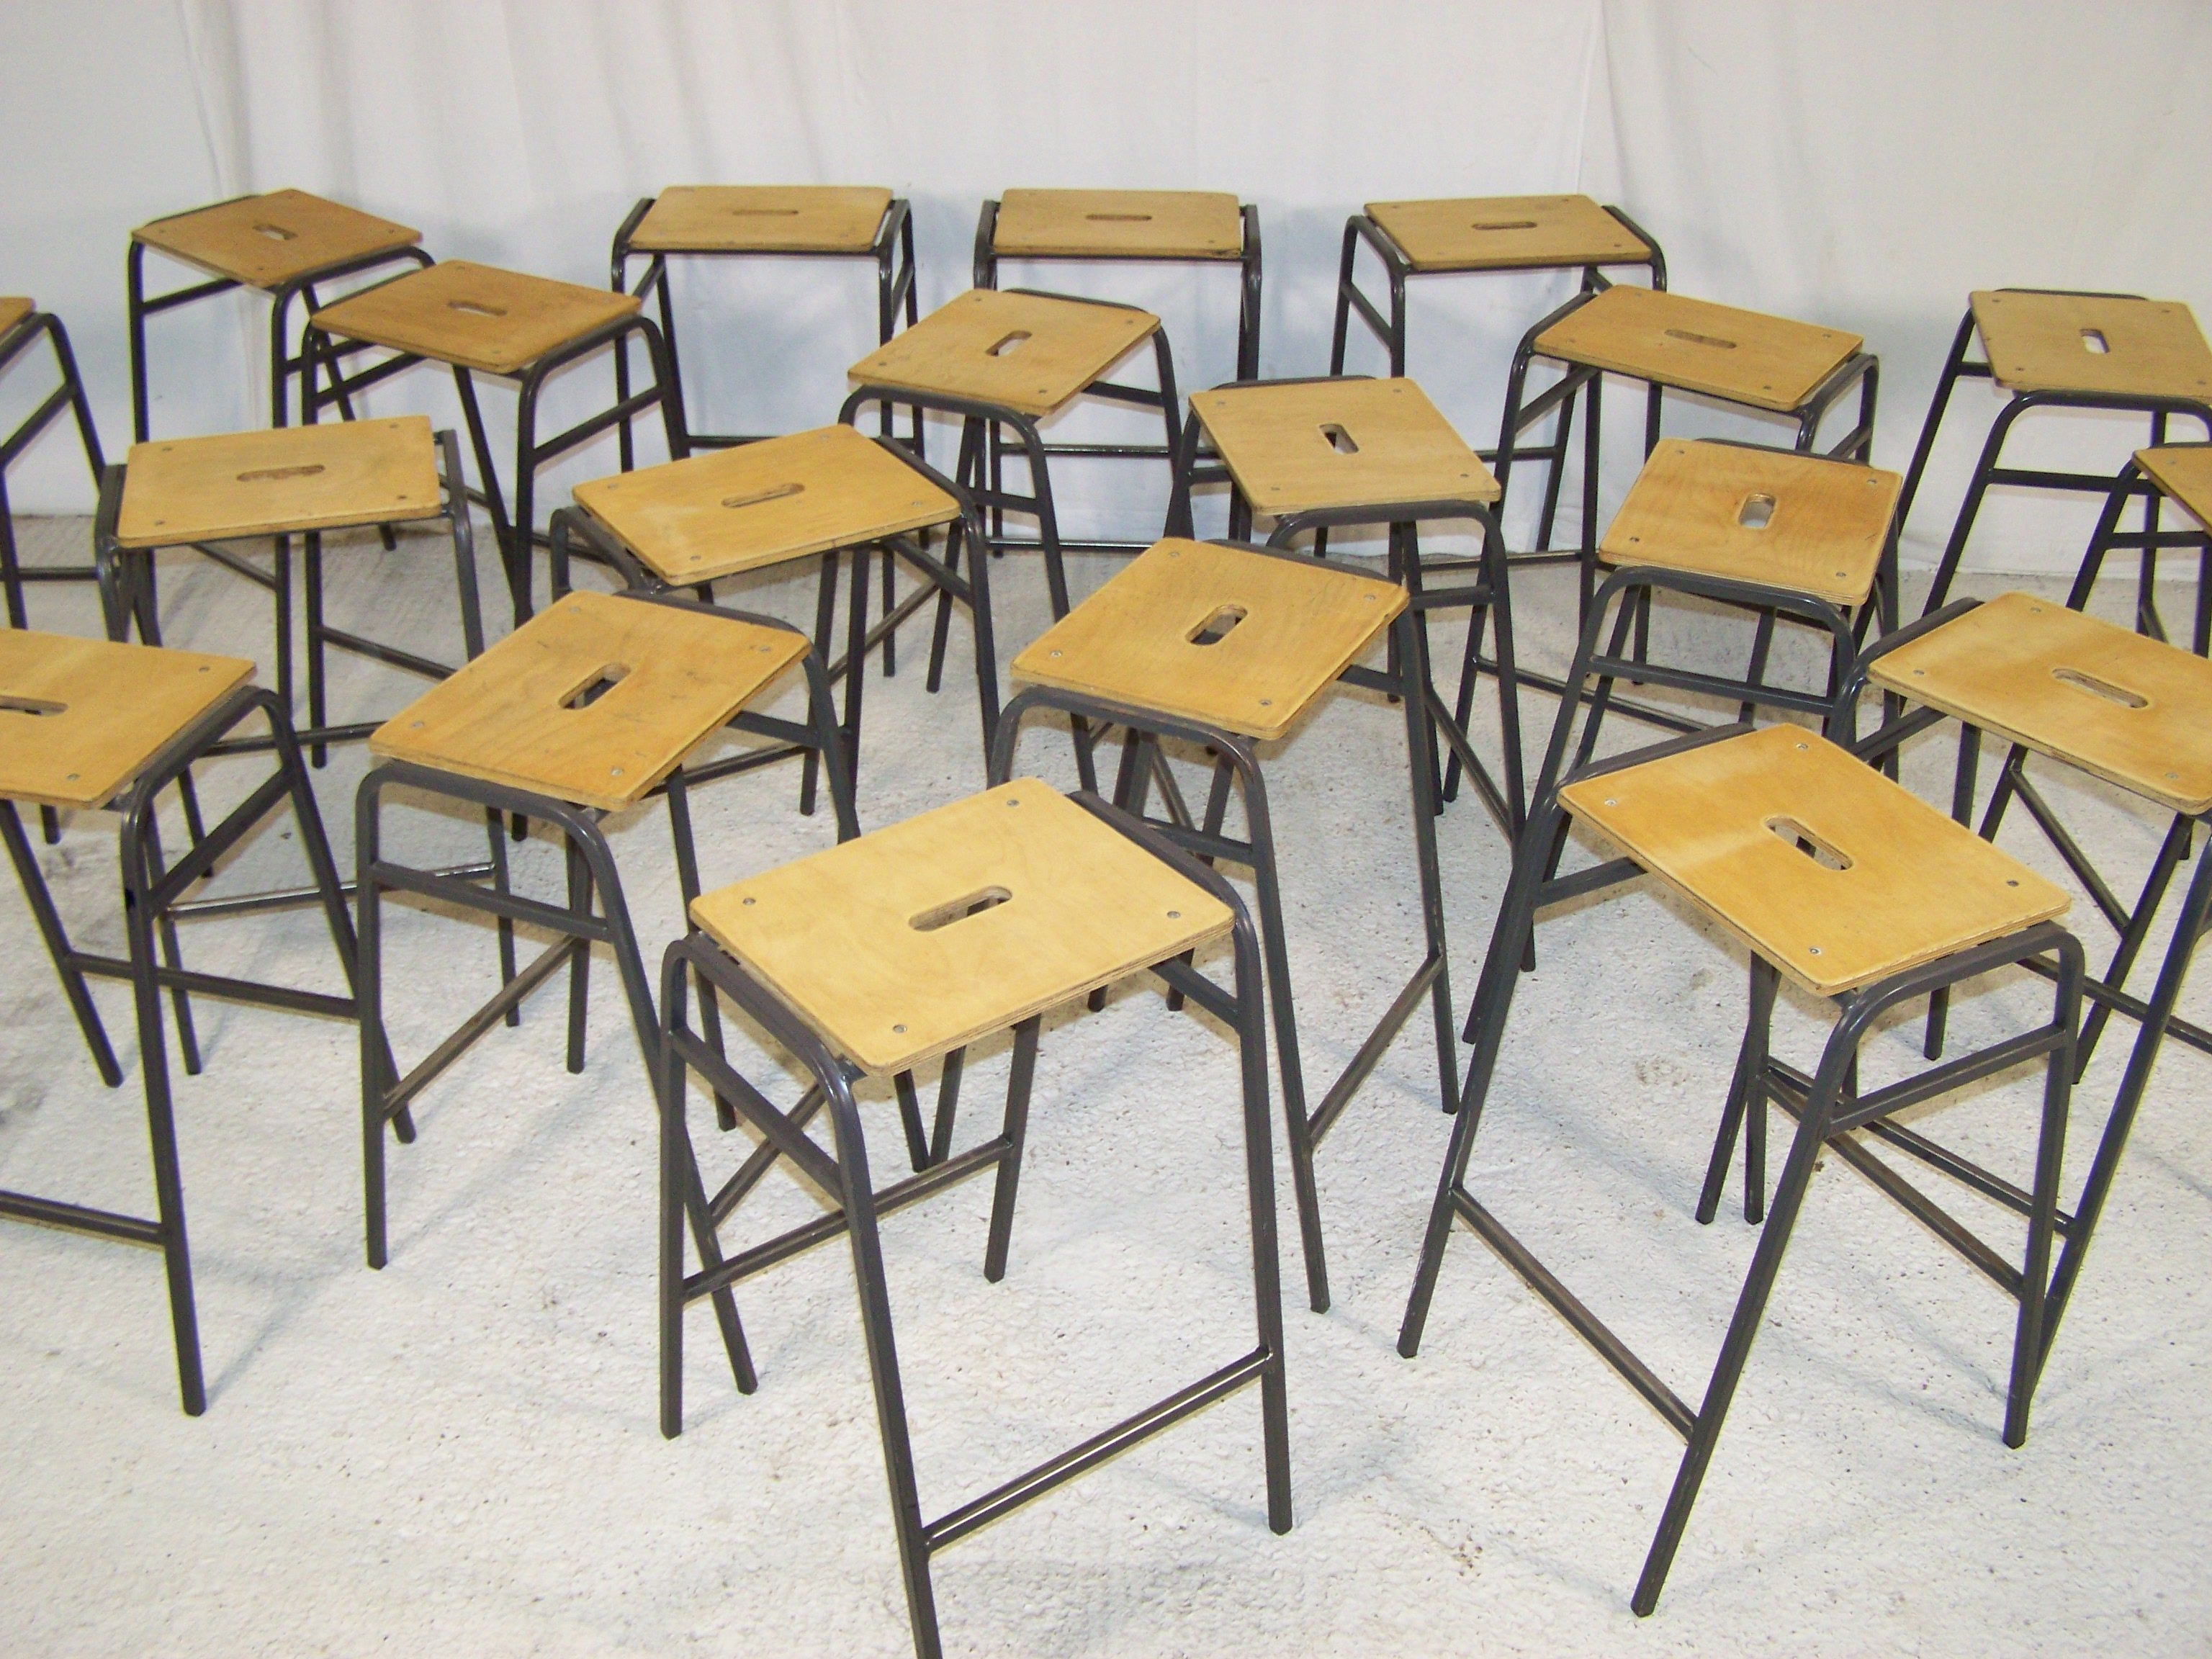 Surprising Vintage Ex School Stacking Lab Stools By Remploy In Uk Theyellowbook Wood Chair Design Ideas Theyellowbookinfo